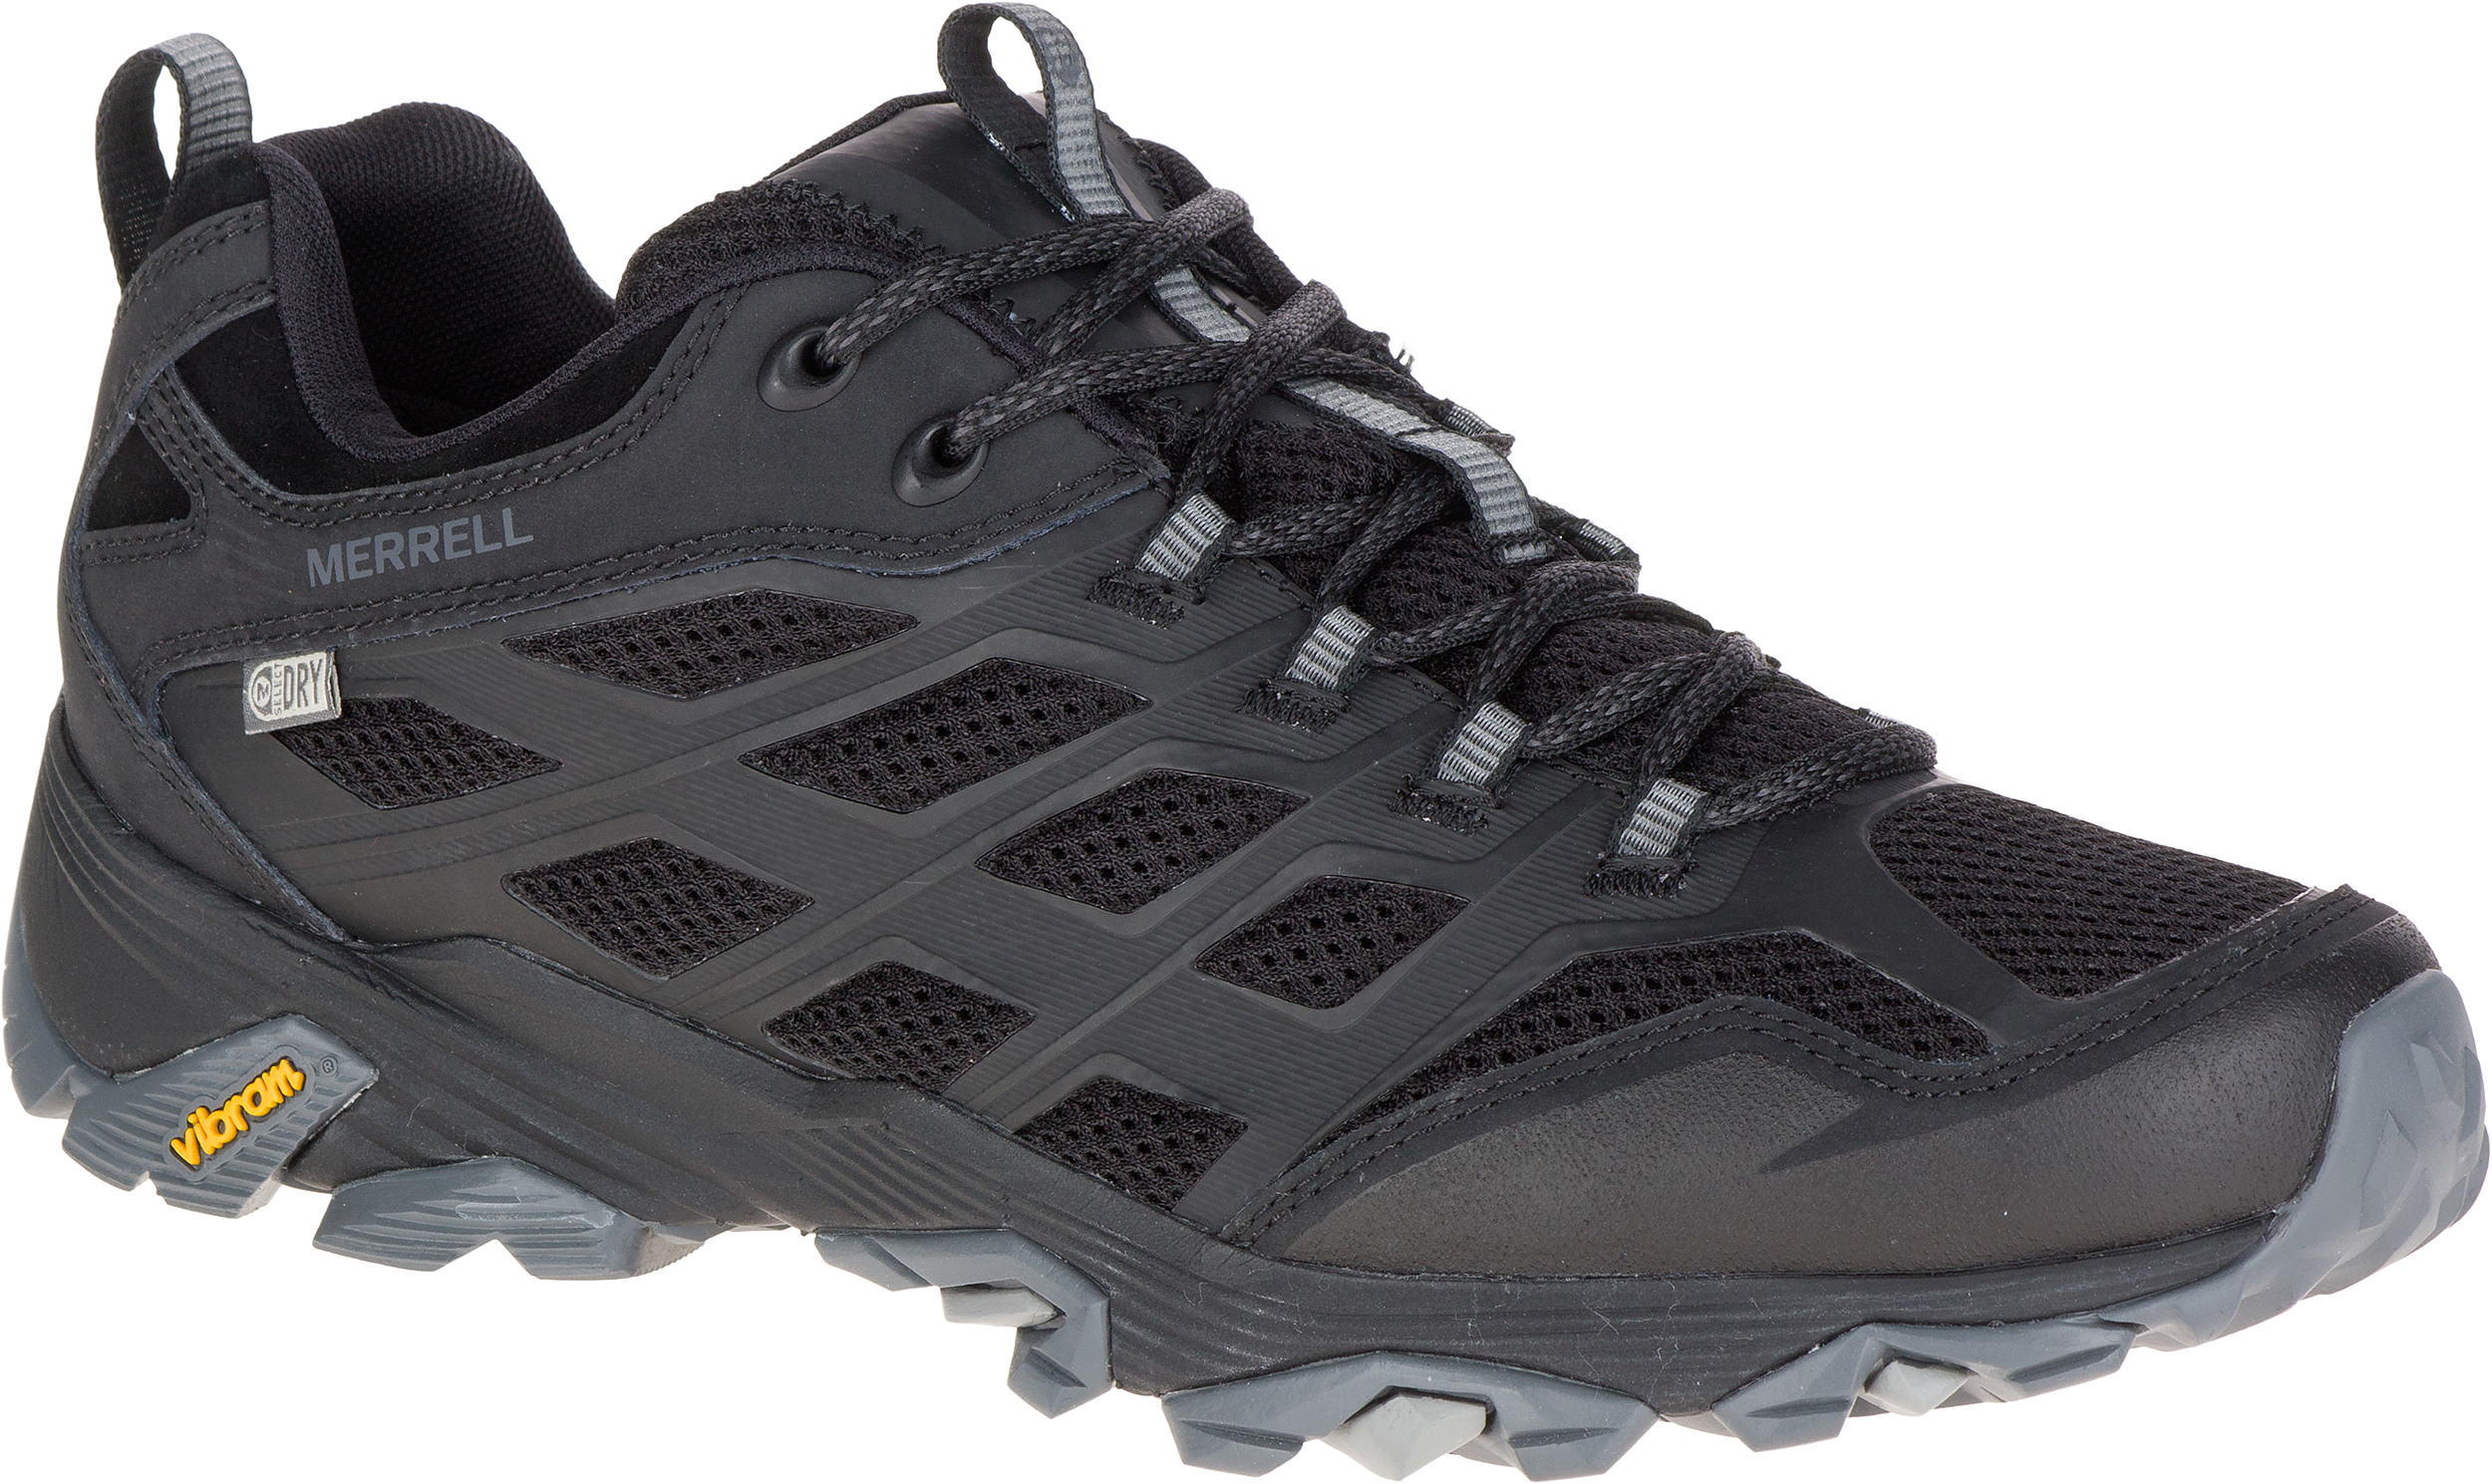 Shoes Moab Light Fst Men's Waterproof Merrell Trail hQrdsCtx